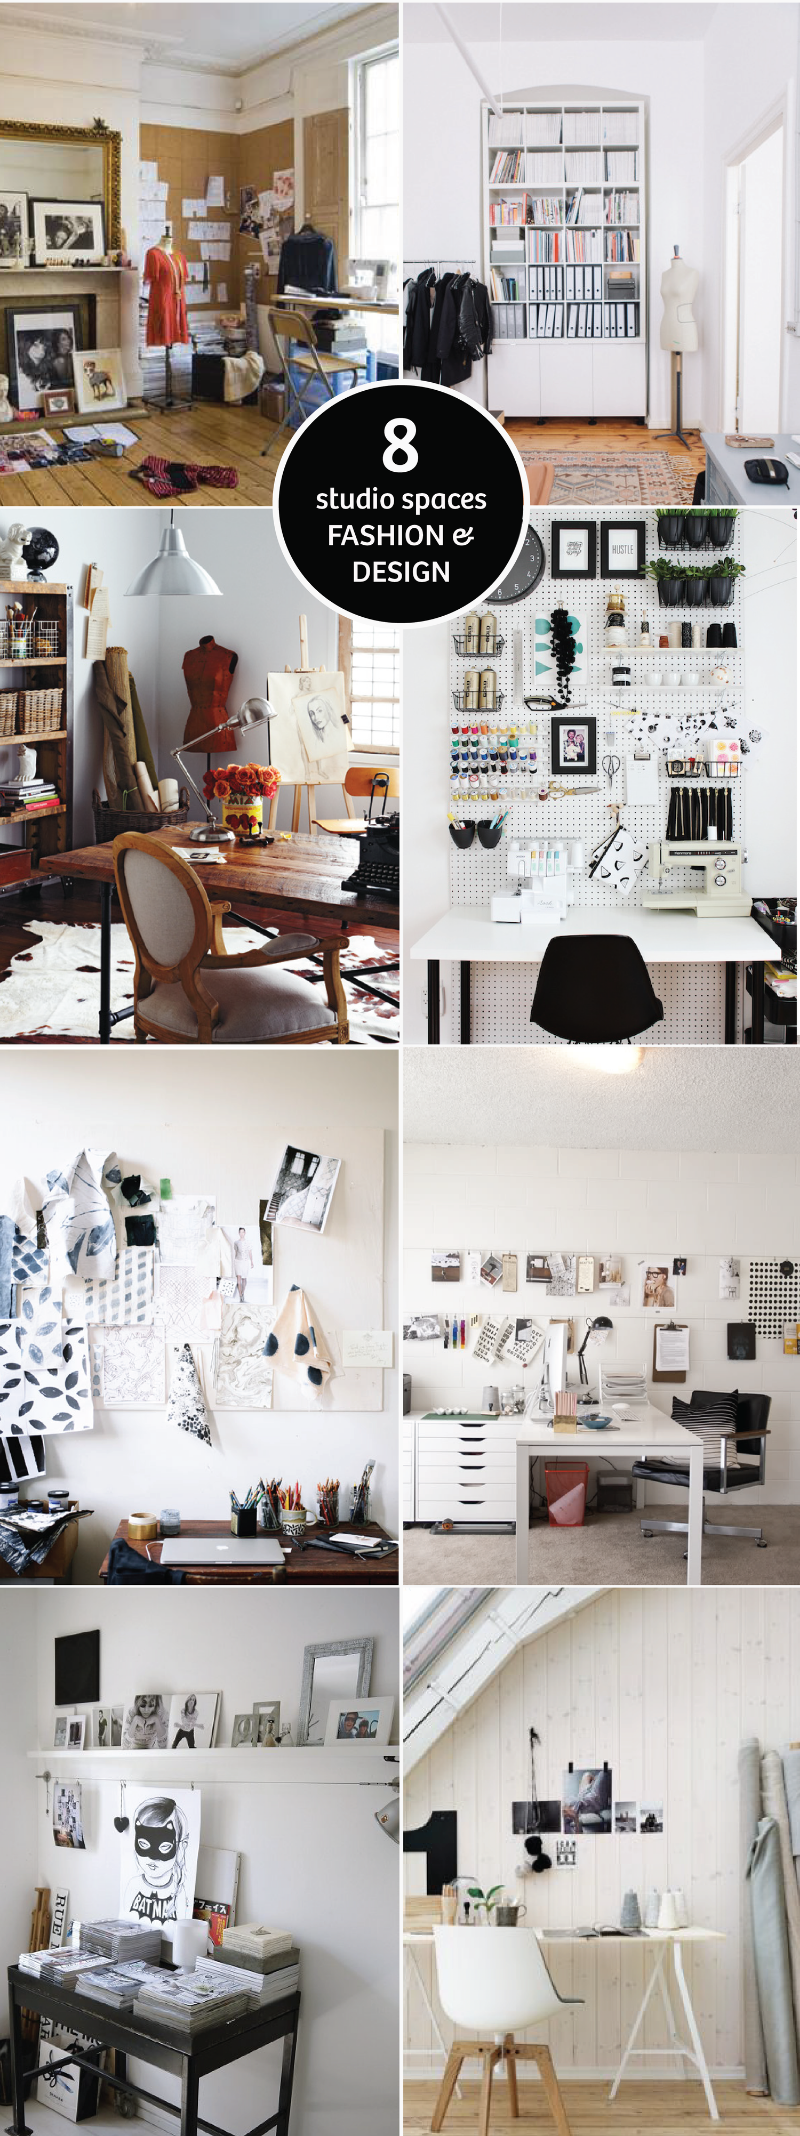 Images: (Top Left) Fashion Designer Jemima French's home studio via  The Independent  , (Top Right) Johanna Schneider's home studio via  Freunde von Freunde , (Upper Middle Left) via  Style at Home , (Upper Middle Right) Mandy Pellegerin's home studio via  Fabric Paper Glue , (Lower Middle Left) Rebecca Atwood's home studio via  Apartment 34 , (Lower Middle Right) Lindsay Stetson's home studio via  Eva Black Design , (Bottom Left) via  Vosgesparis , (Bottom Right) via  Homedit